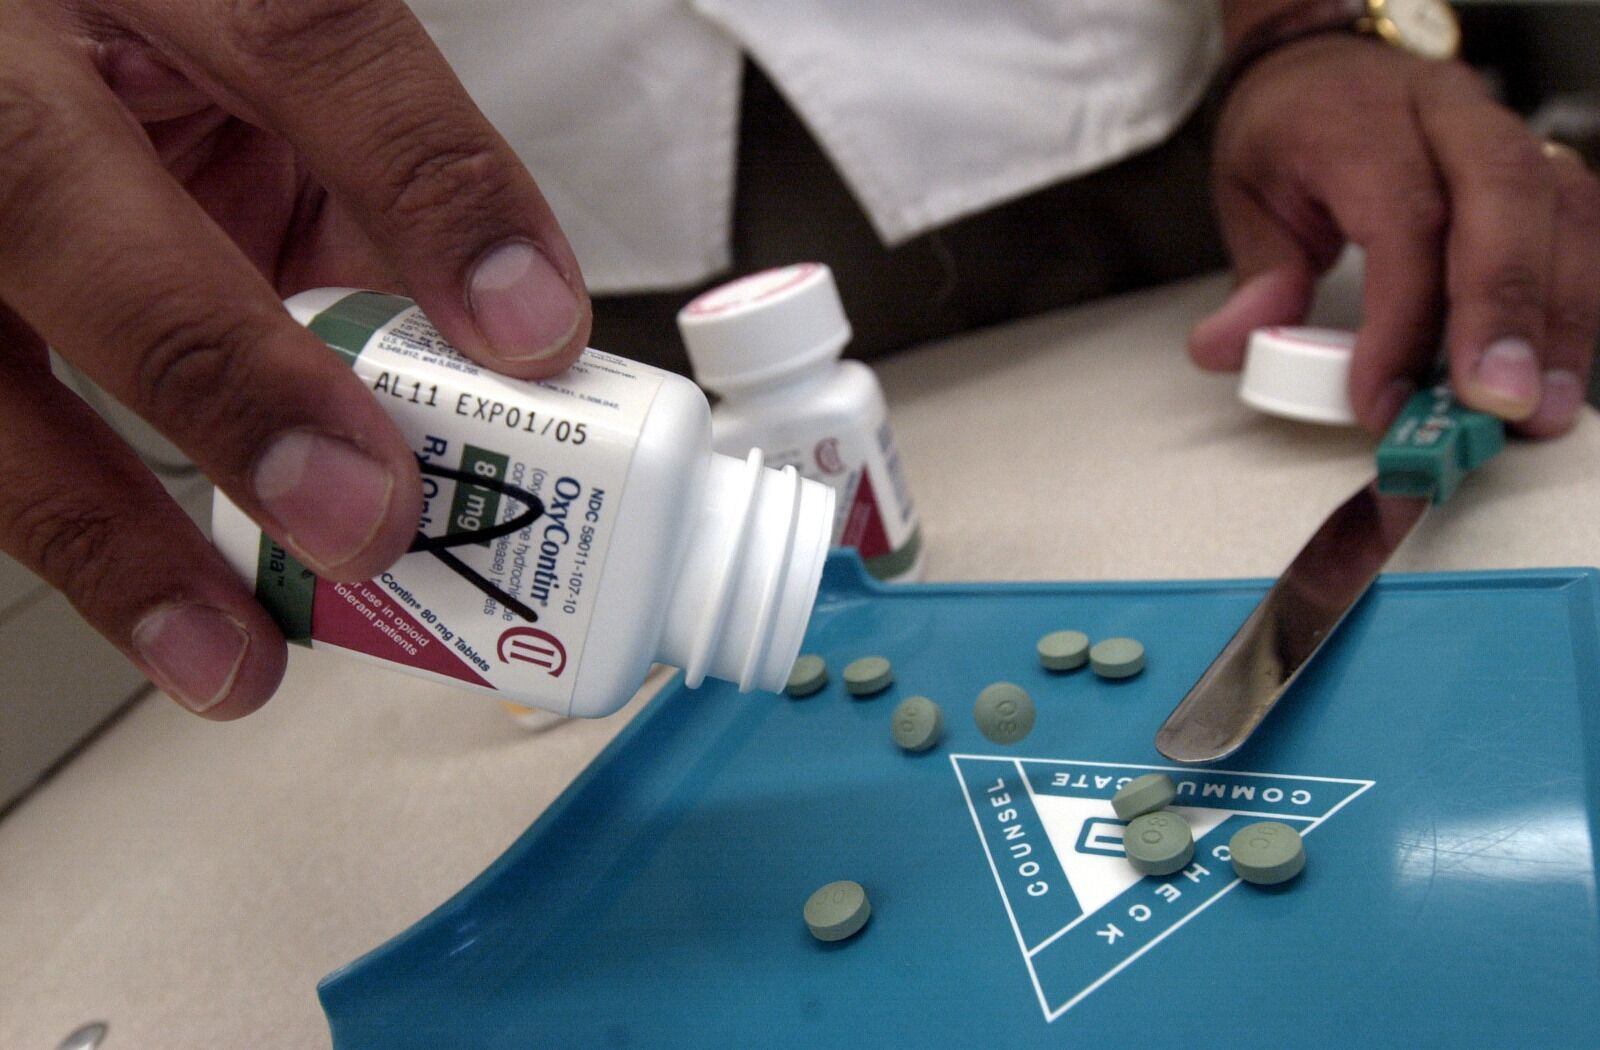 FX's The Weekly Episode 10 explores a real drug epidemic in the United States